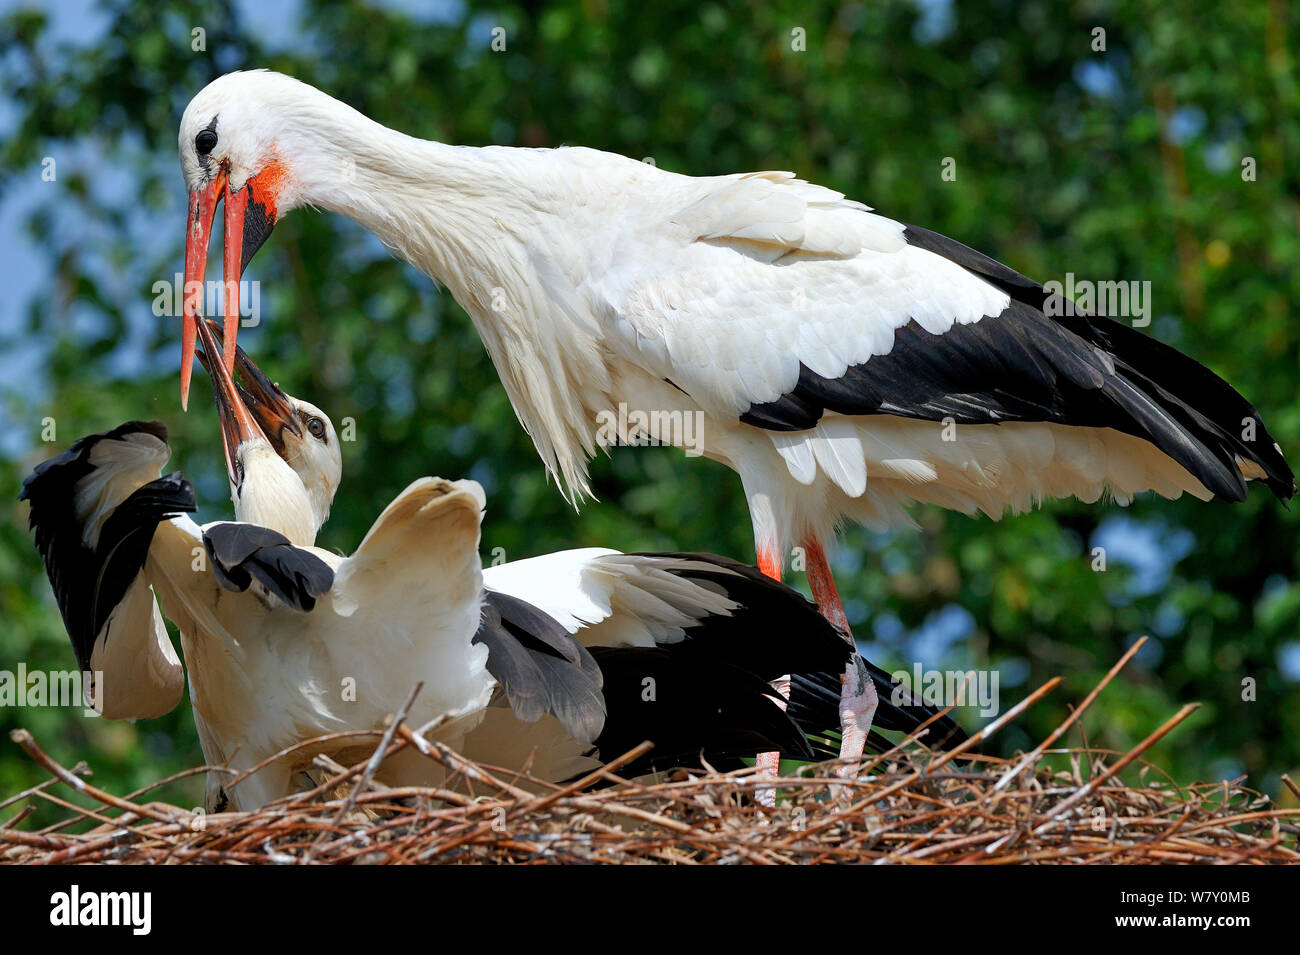 White stork (Ciconia ciconia) regurgitating food to chicks in nest,  Alsace, France. July. Stock Photo